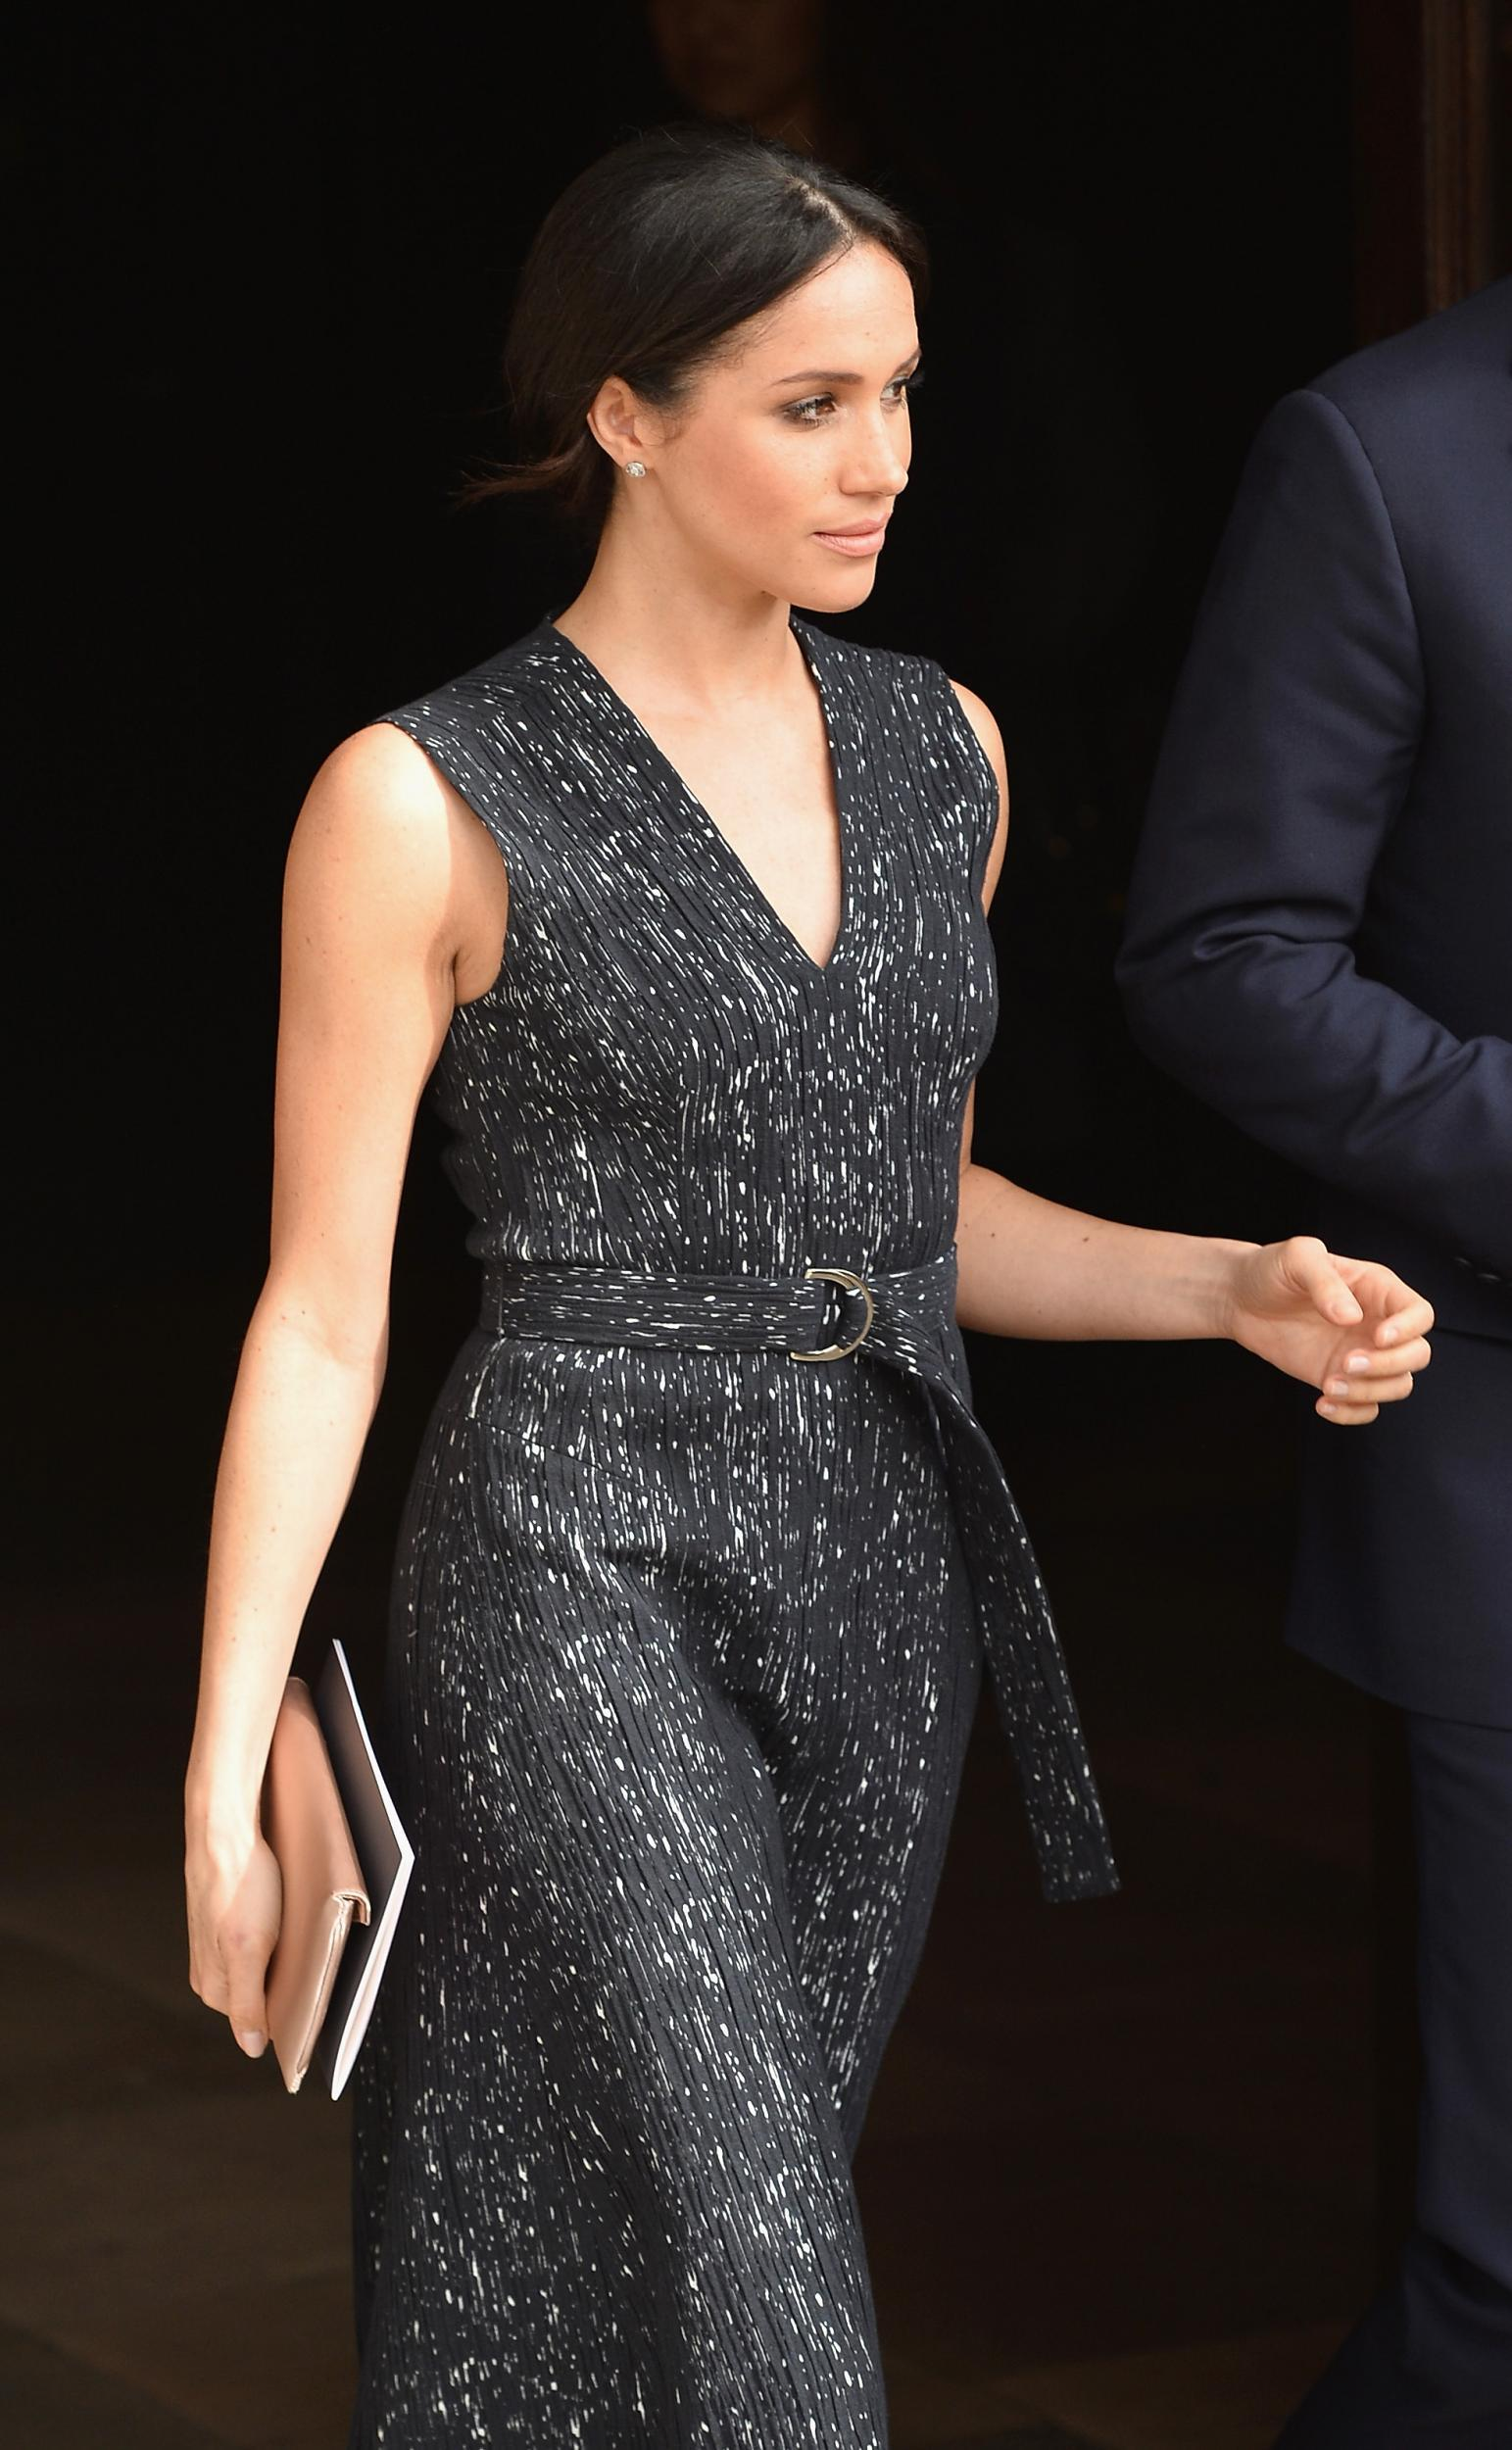 How Meghan Markle is impacting the fashion industry | The Independent